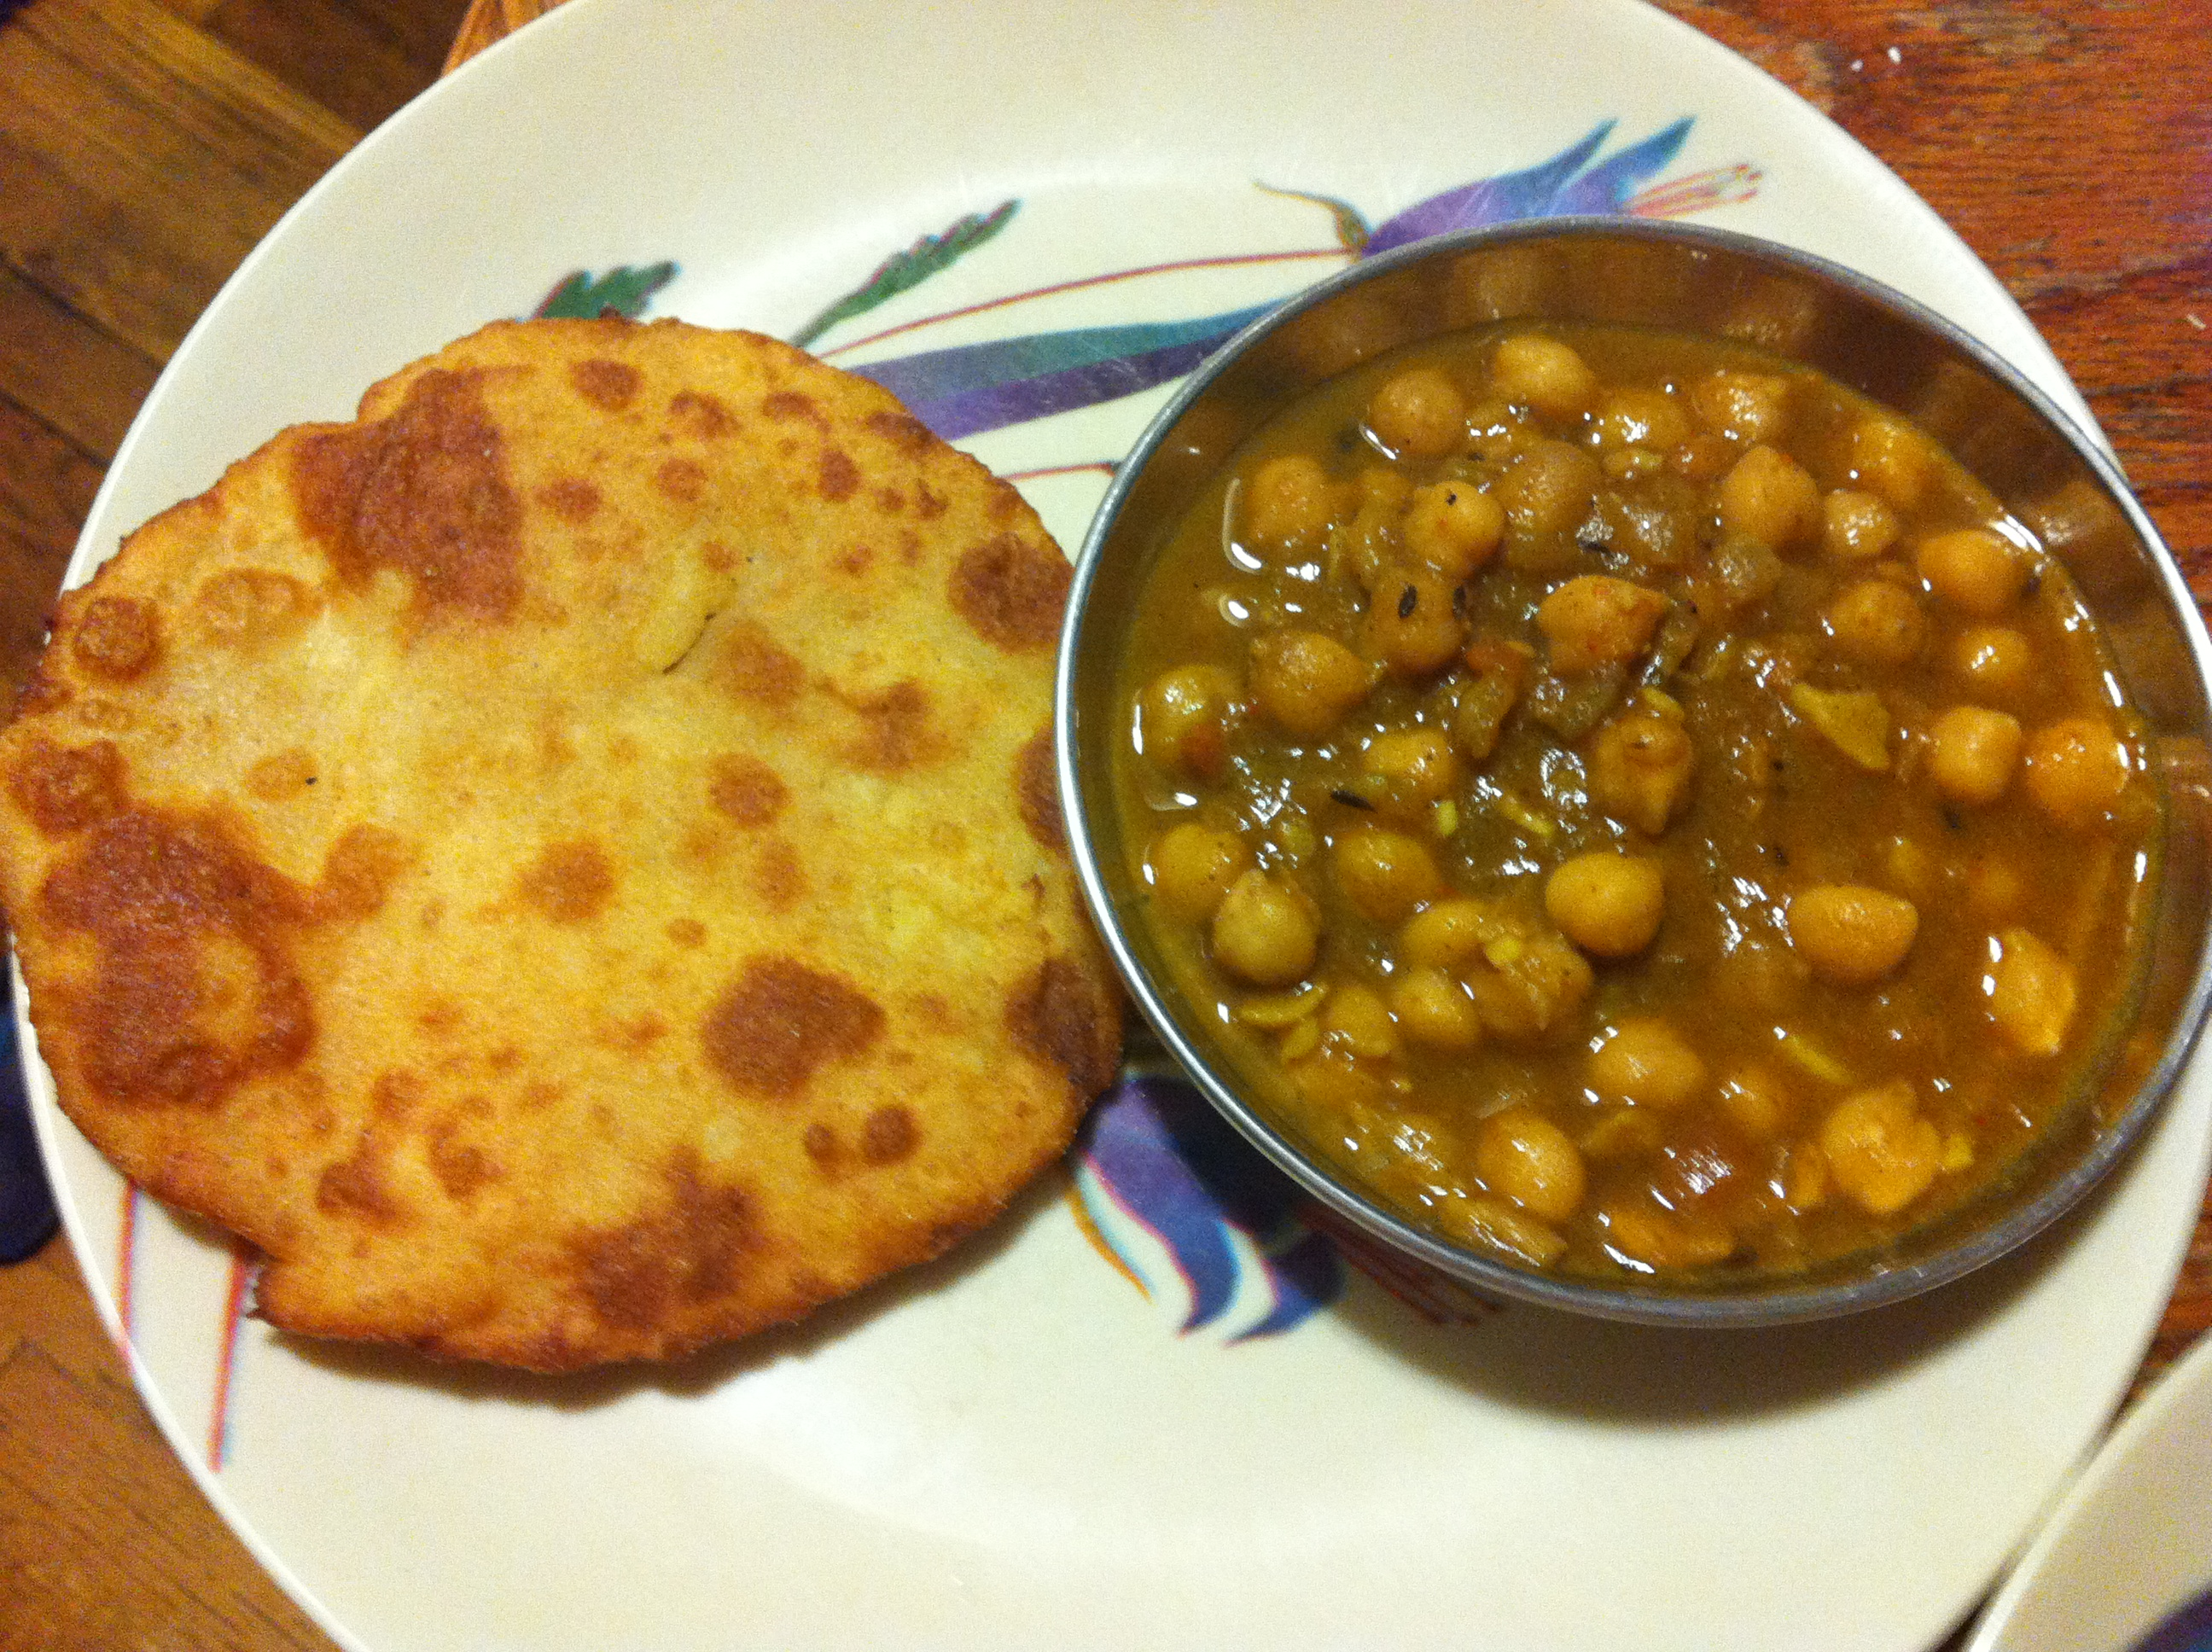 Chole Bhatura- Chickpeas or Garbanzo beans with fried bread